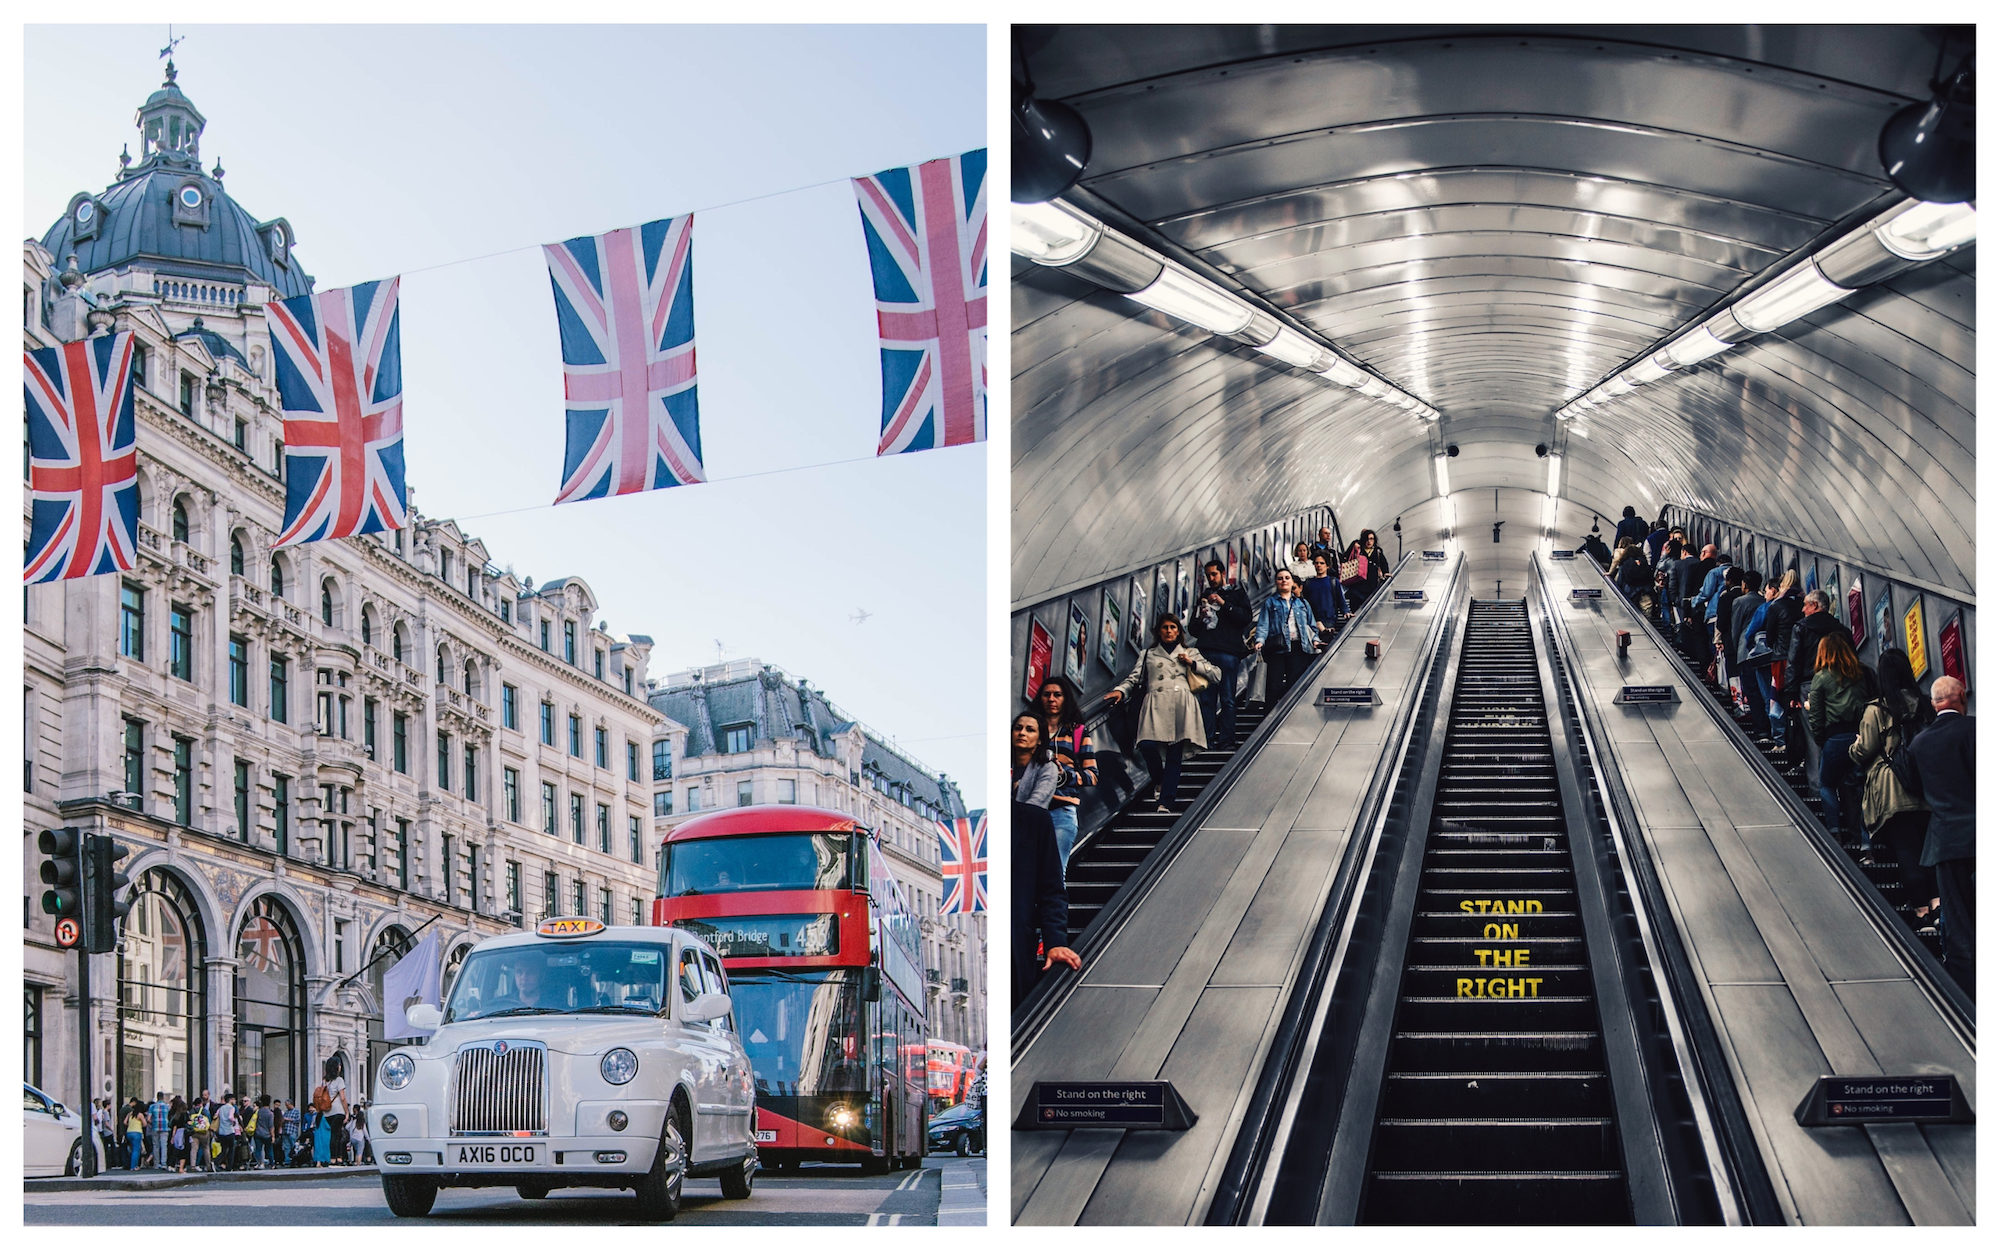 Paris vs London? The Union Jack flag flies high on Regent's Street with London cabs and red double-decker buses zipping passed (left). Rush-hour on the London Underground escalators (right).